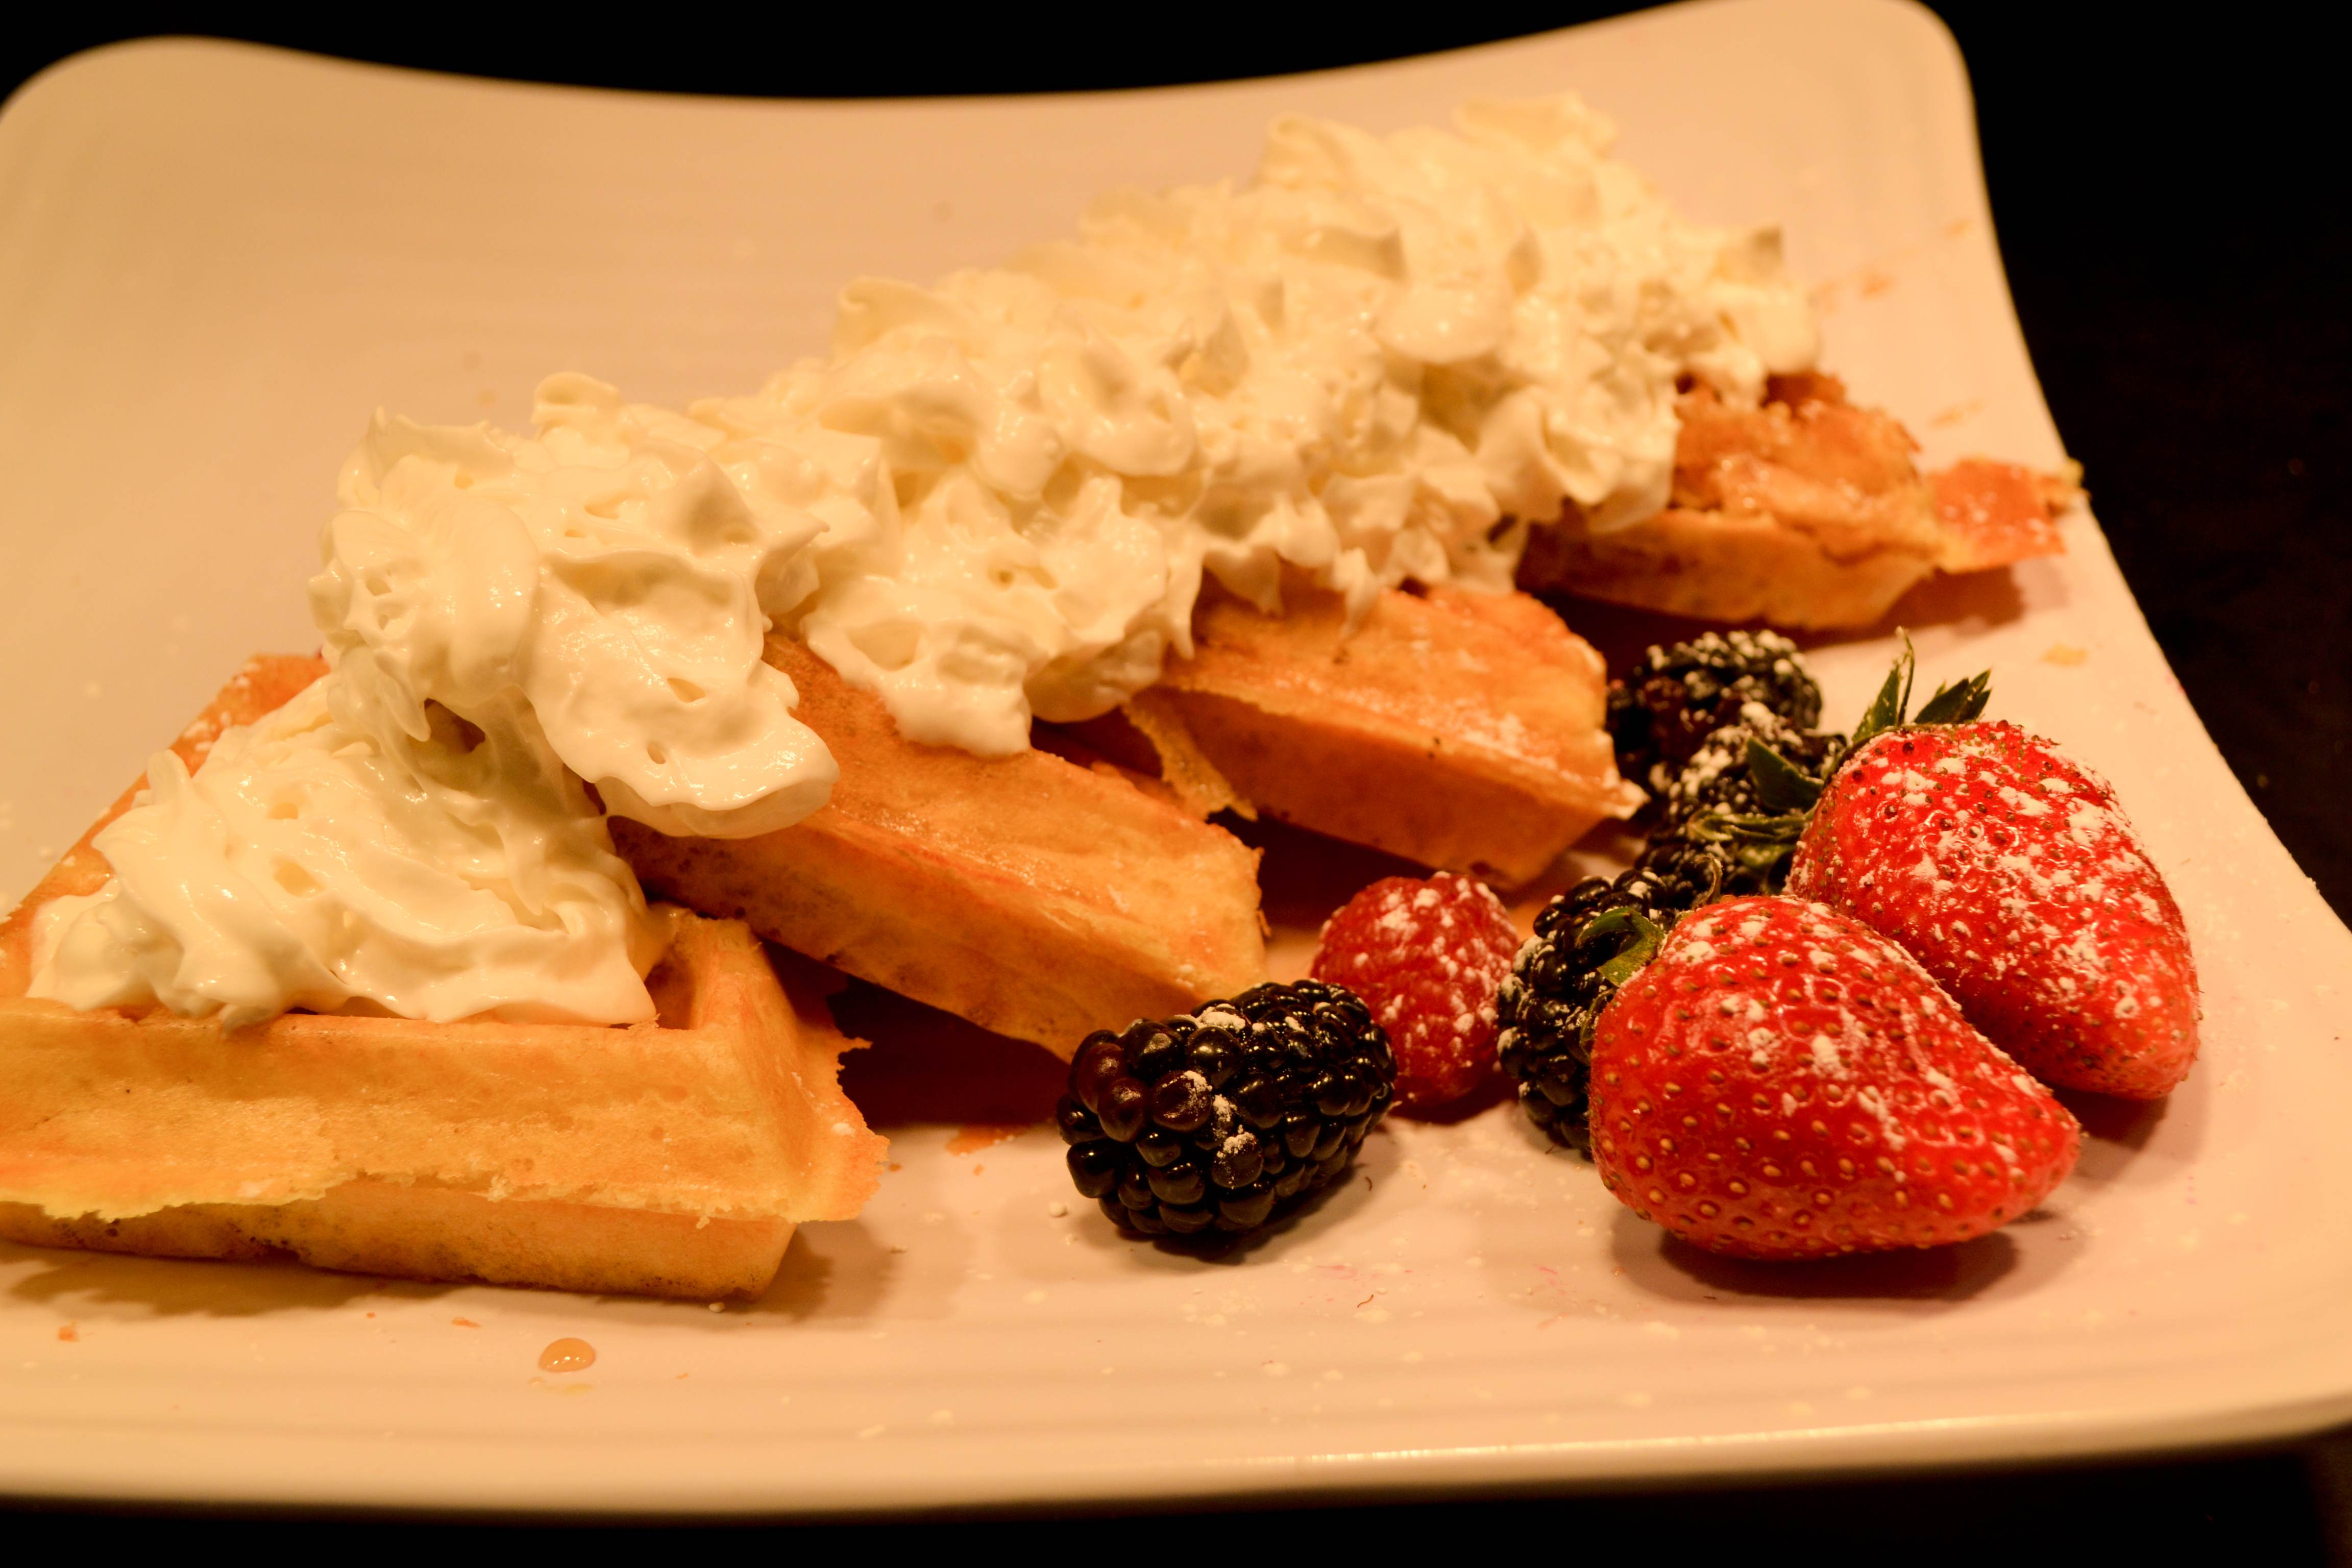 Waffles and fruit for breakfast